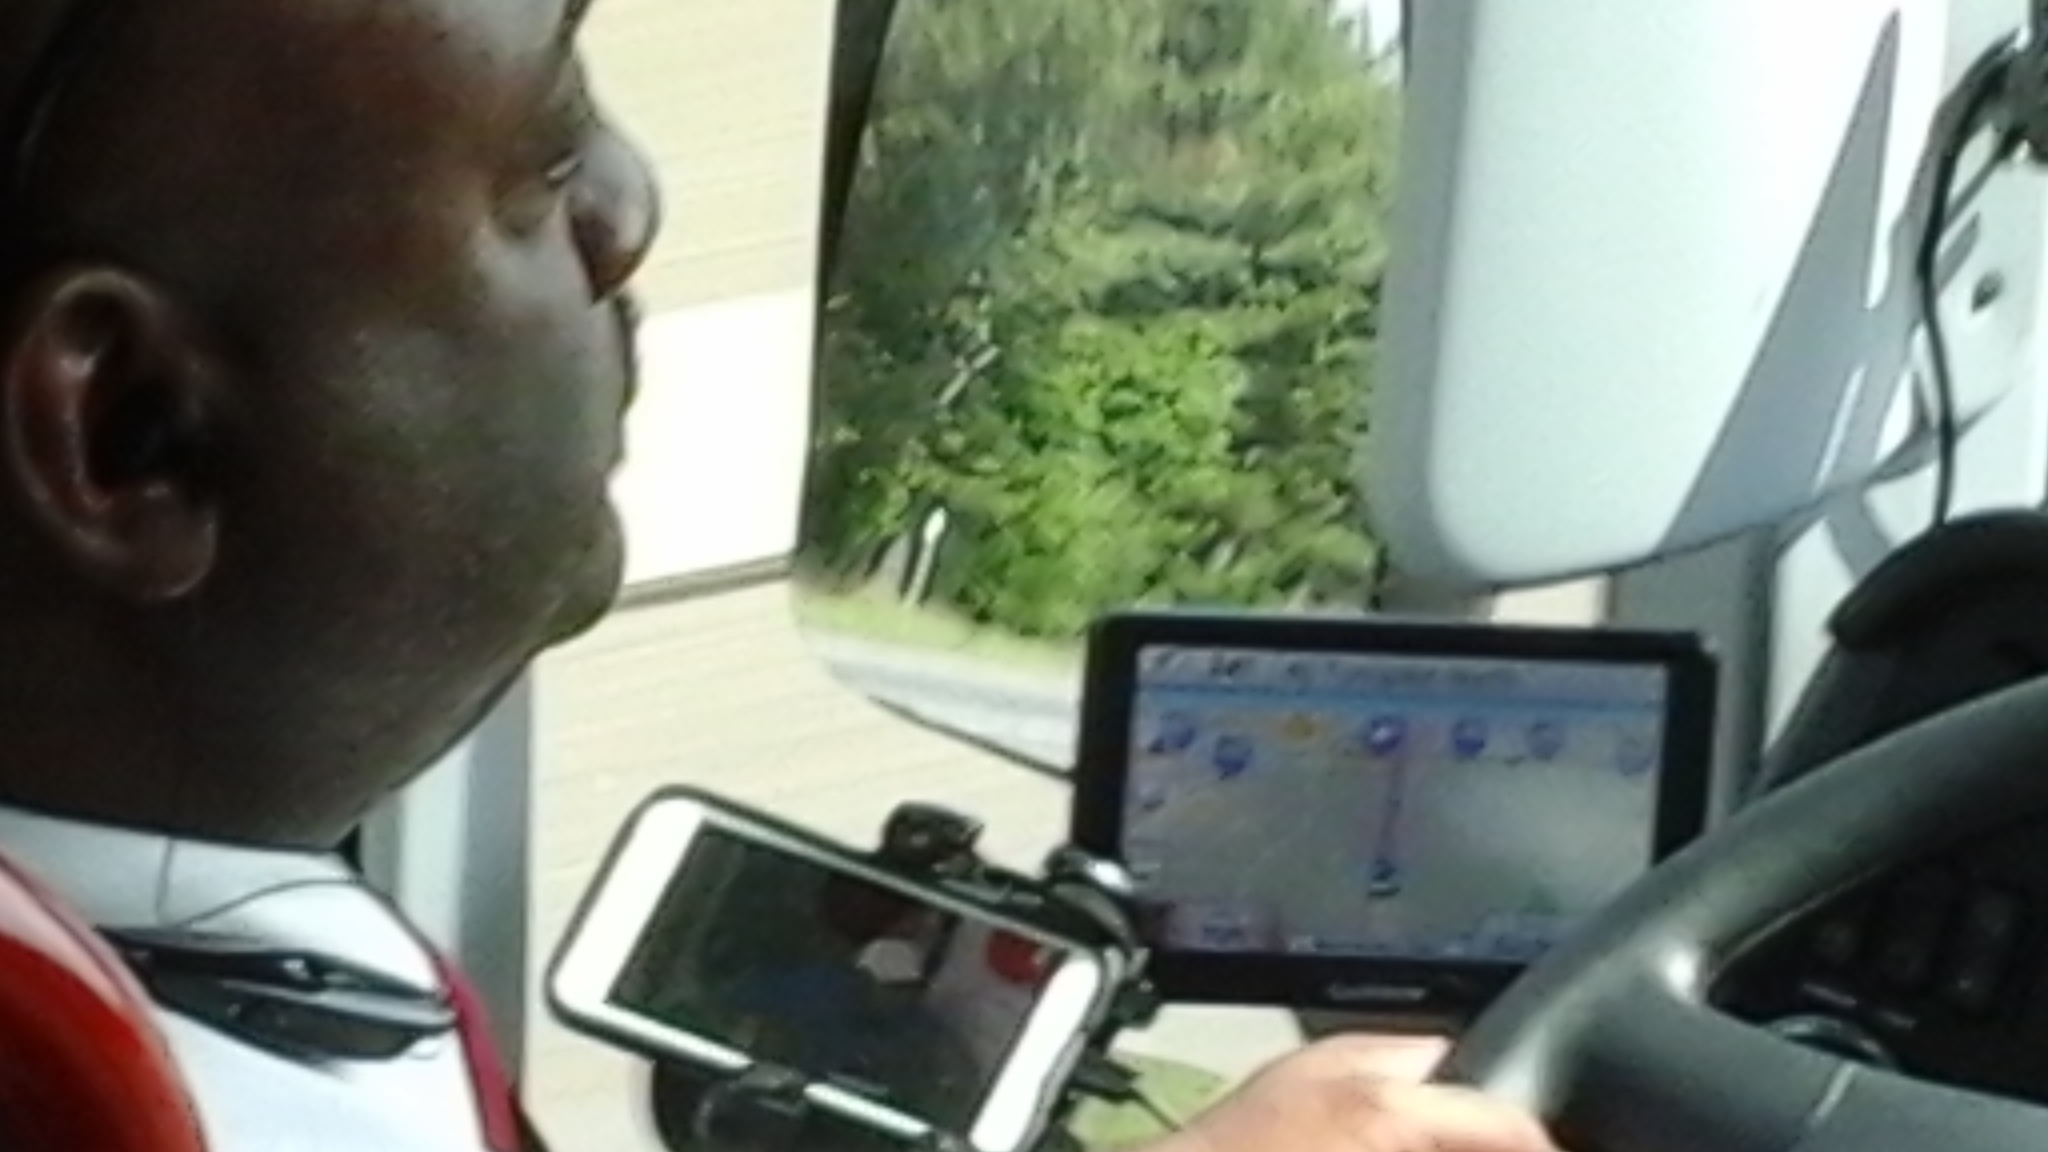 Exclusive: Bus driver watched TV on phone during DC to NYC trip, passenger says